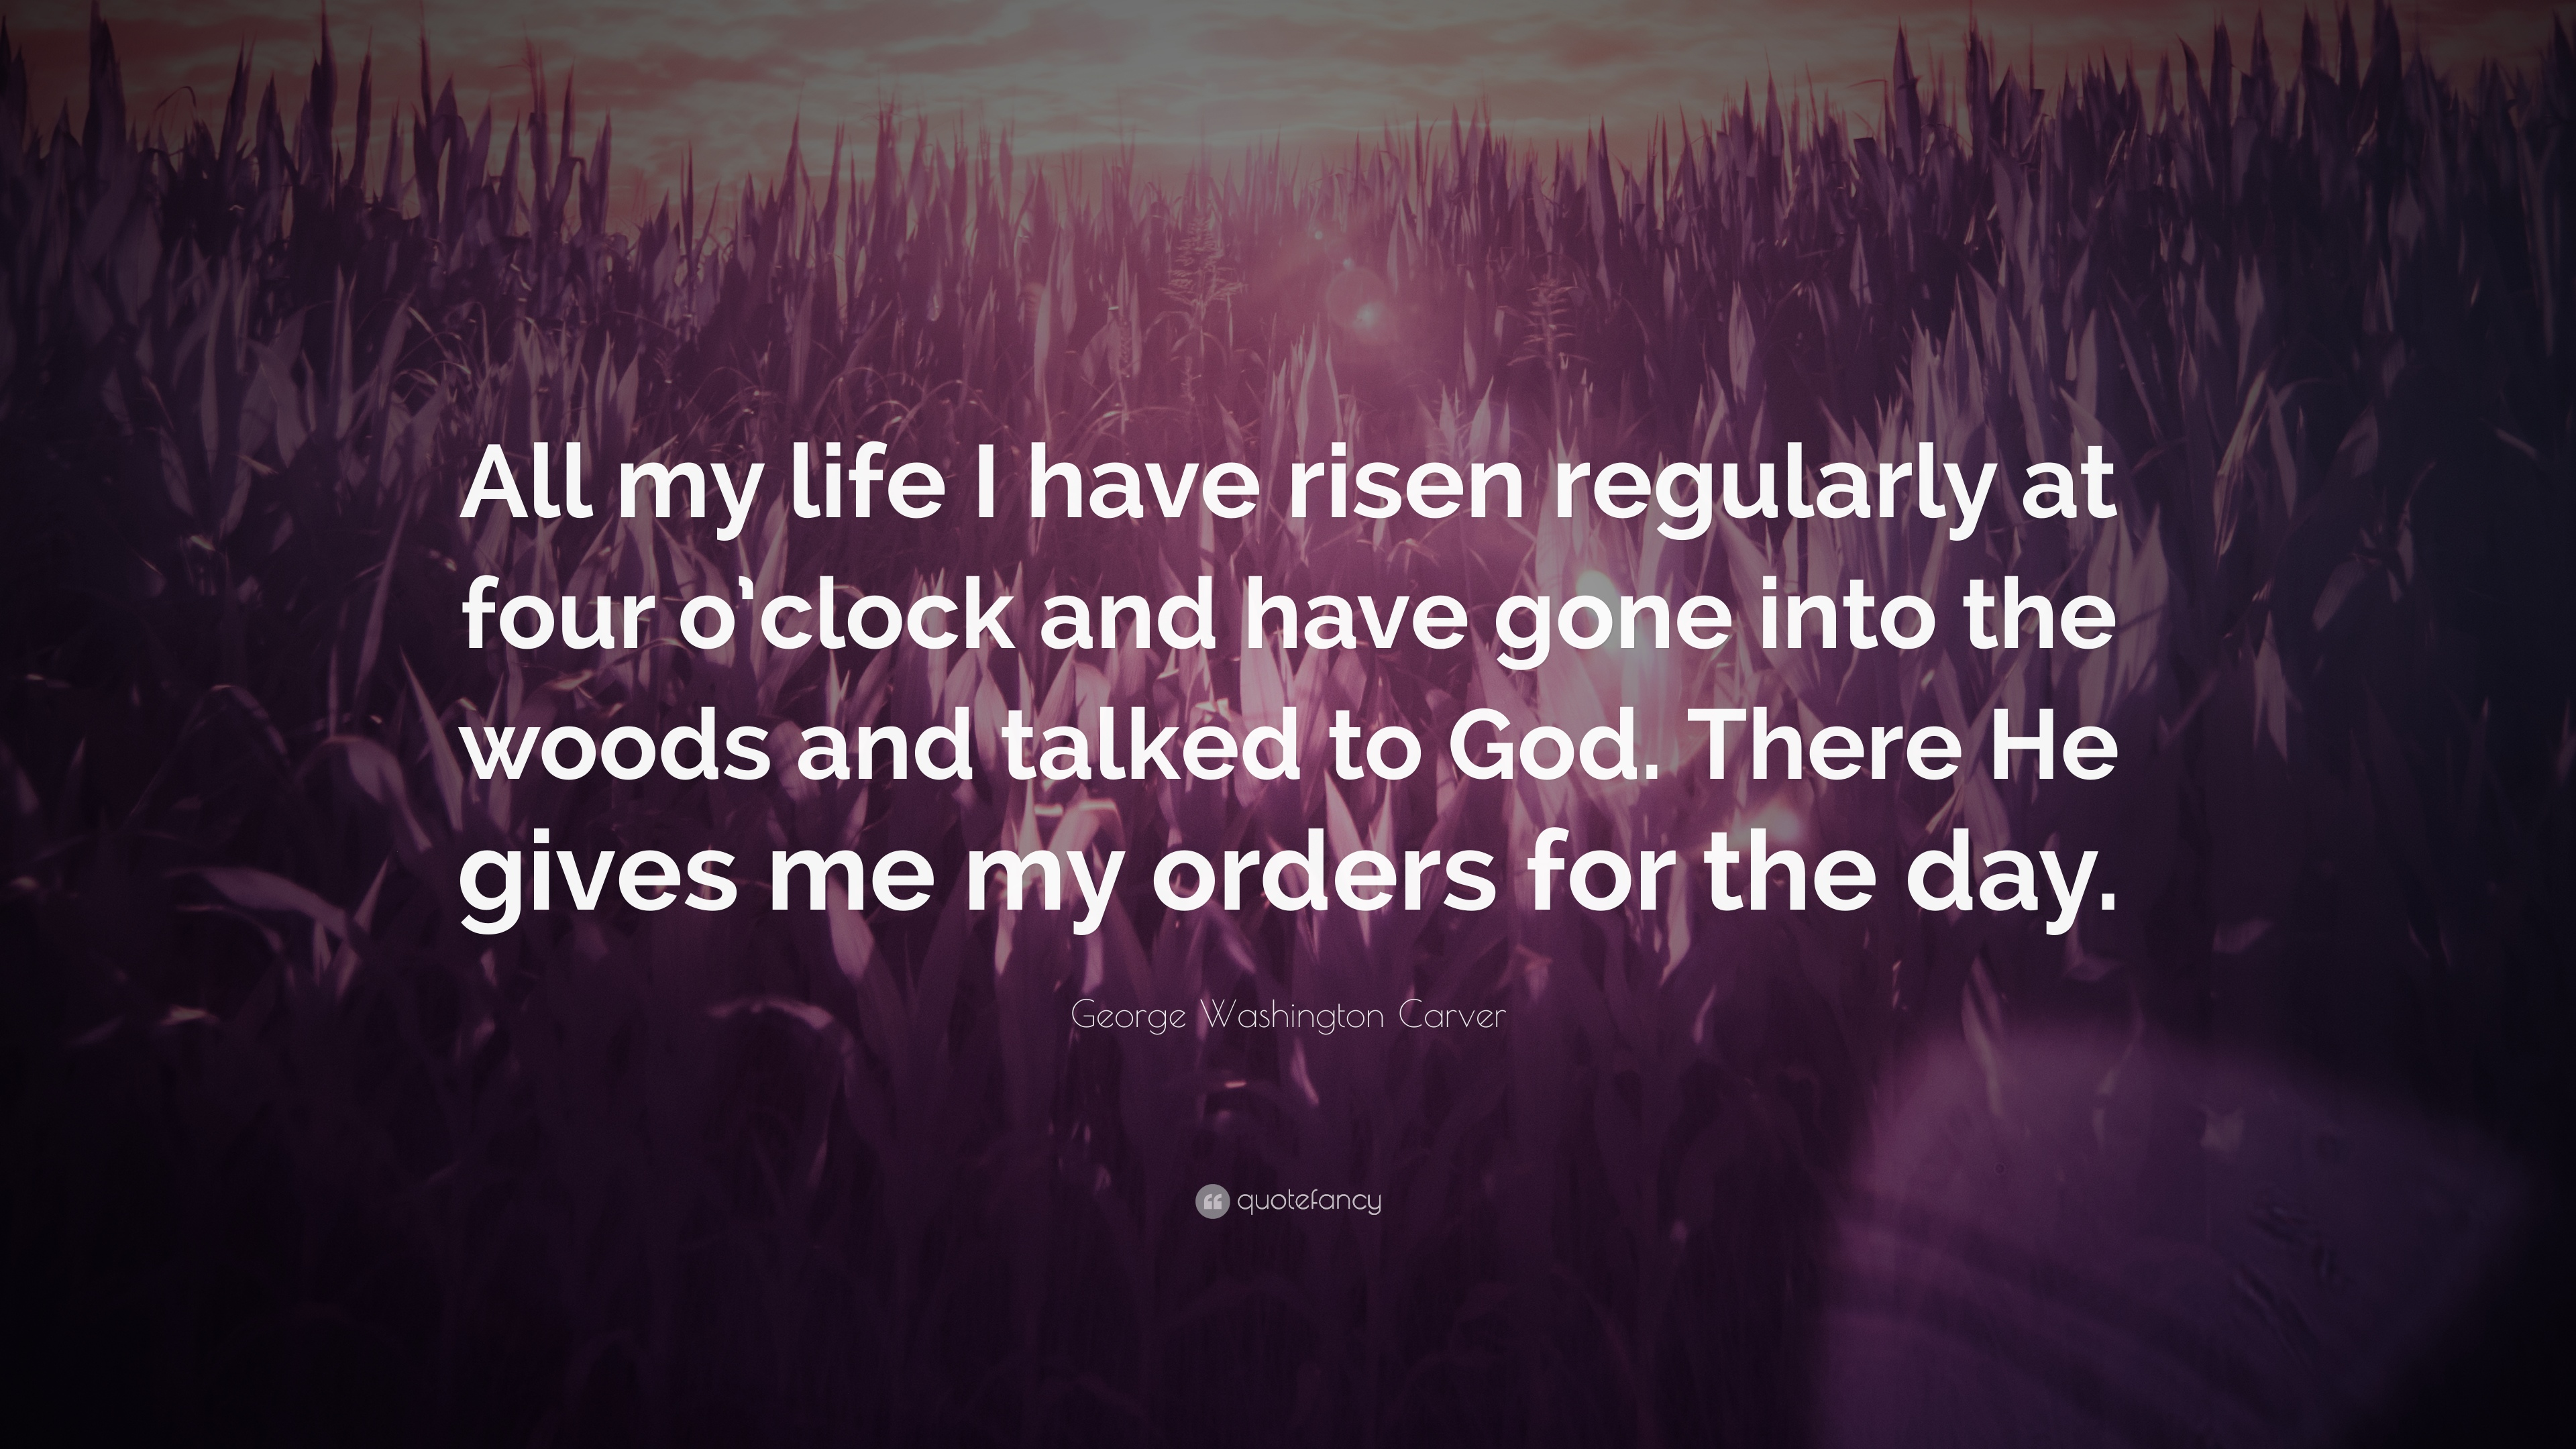 George Washington Carver Quotes | George Washington Carver Quote All My Life I Have Risen Regularly